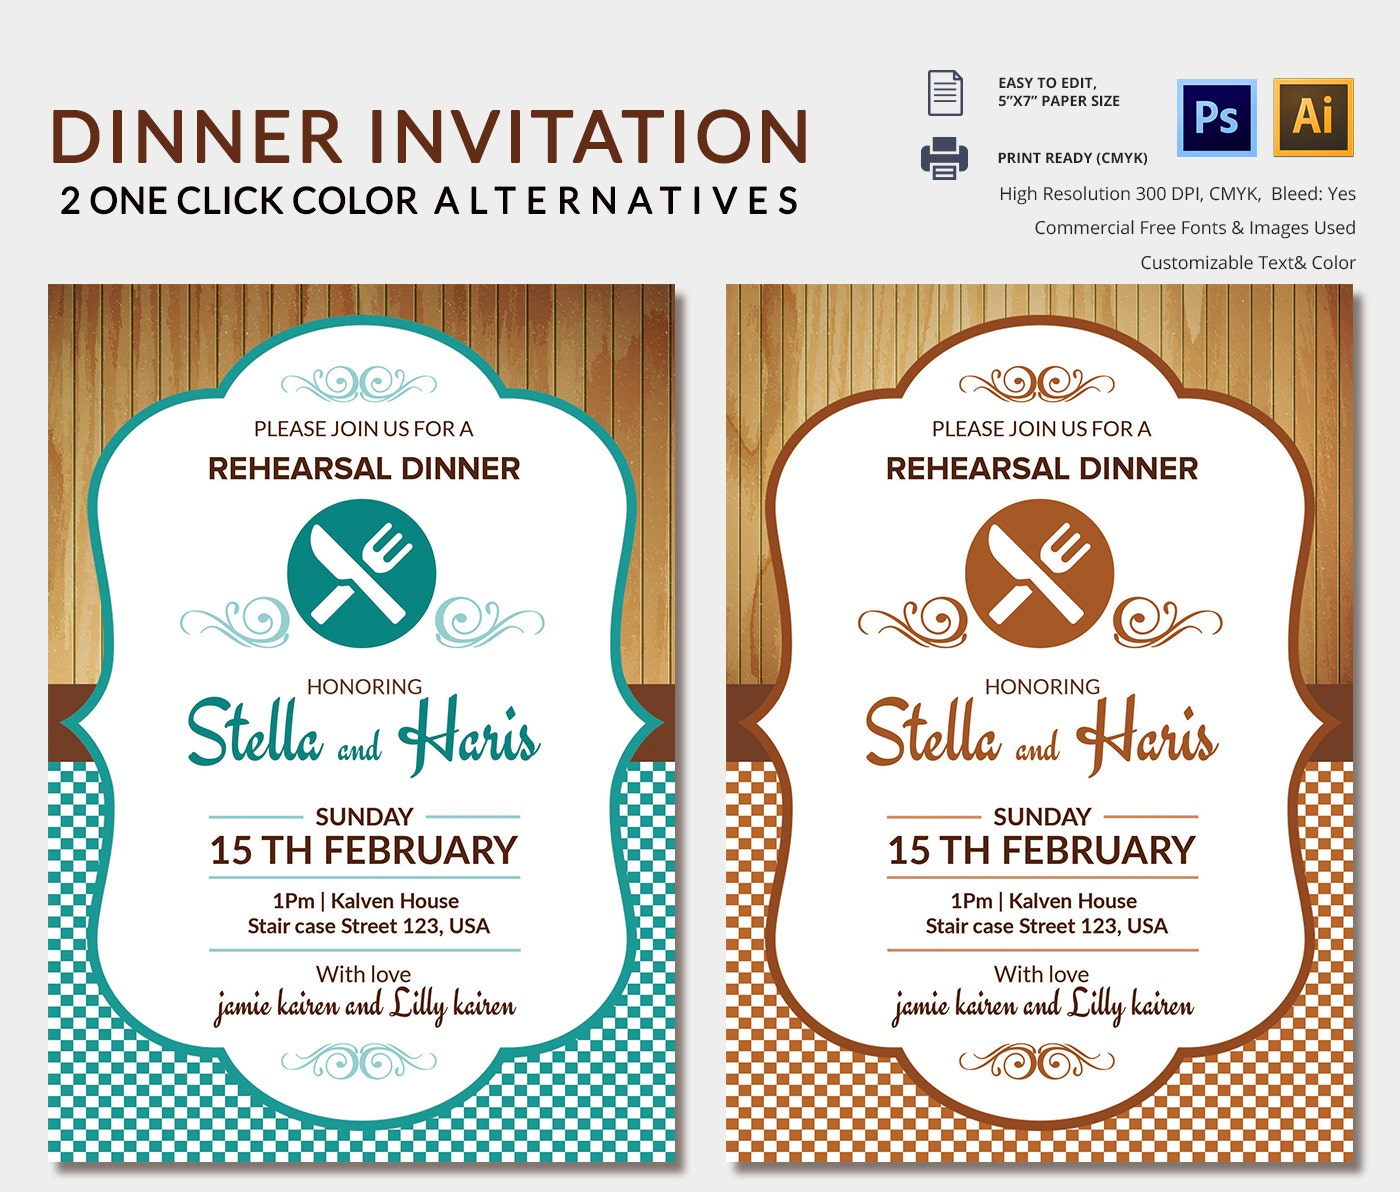 Invitation Template - 25+ Free PSD, PDF Documents Download | Free ...